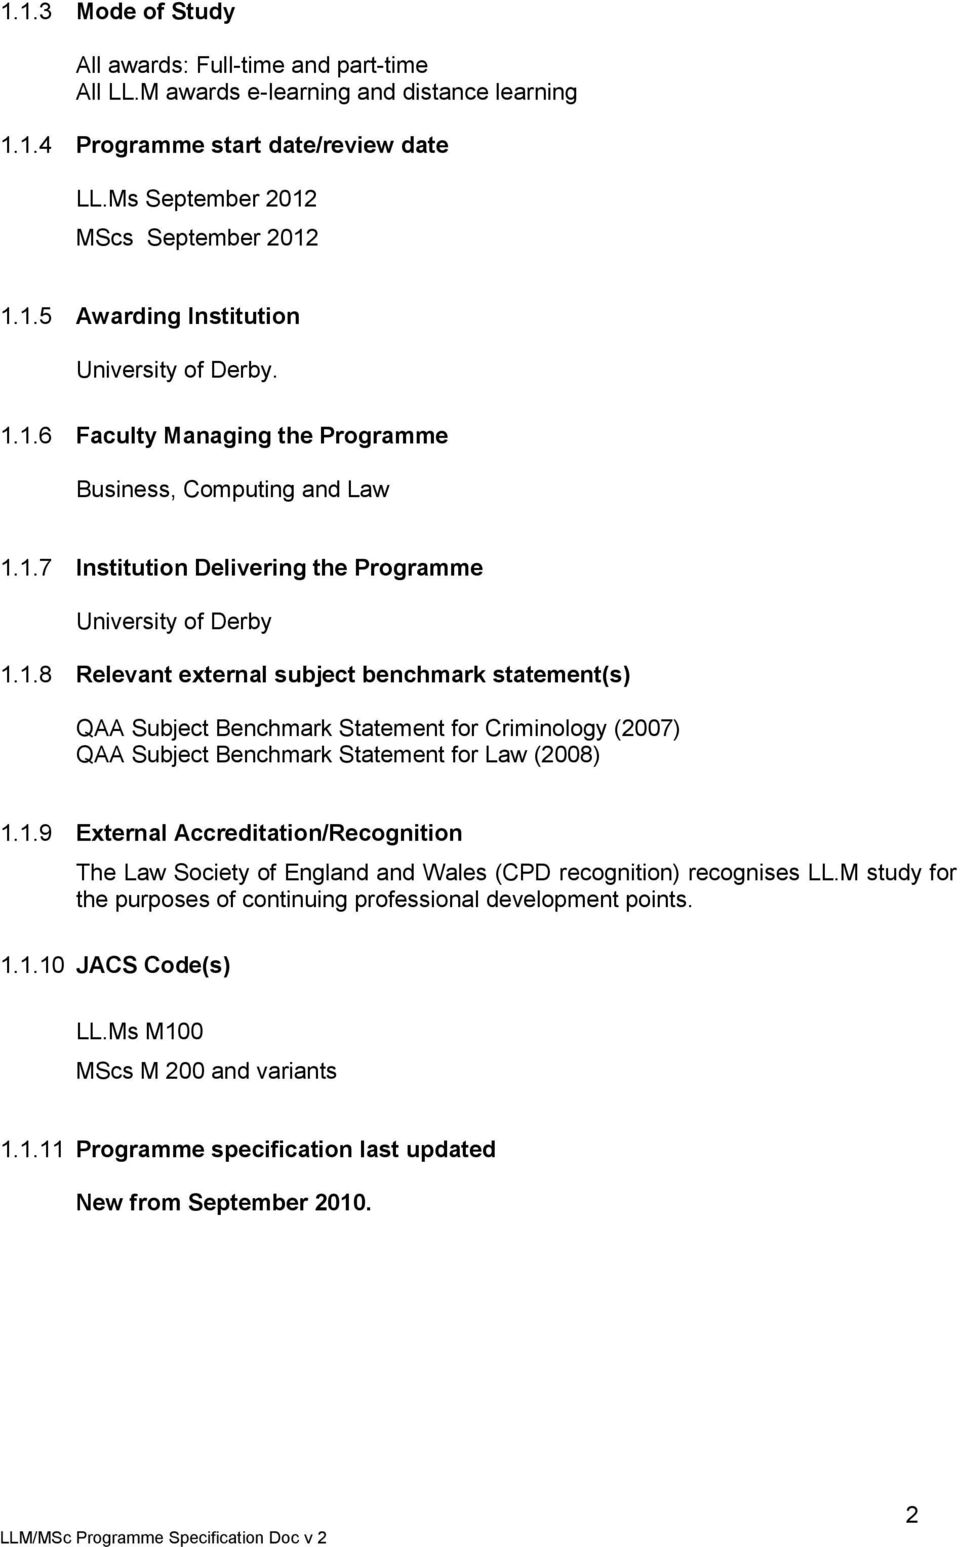 1.9 External Accreditation/Recognition The Law Society of England and Wales (CPD recognition) recognises LL.M study for the purposes of continuing professional development points. 1.1.10 JACS Code(s) LL.